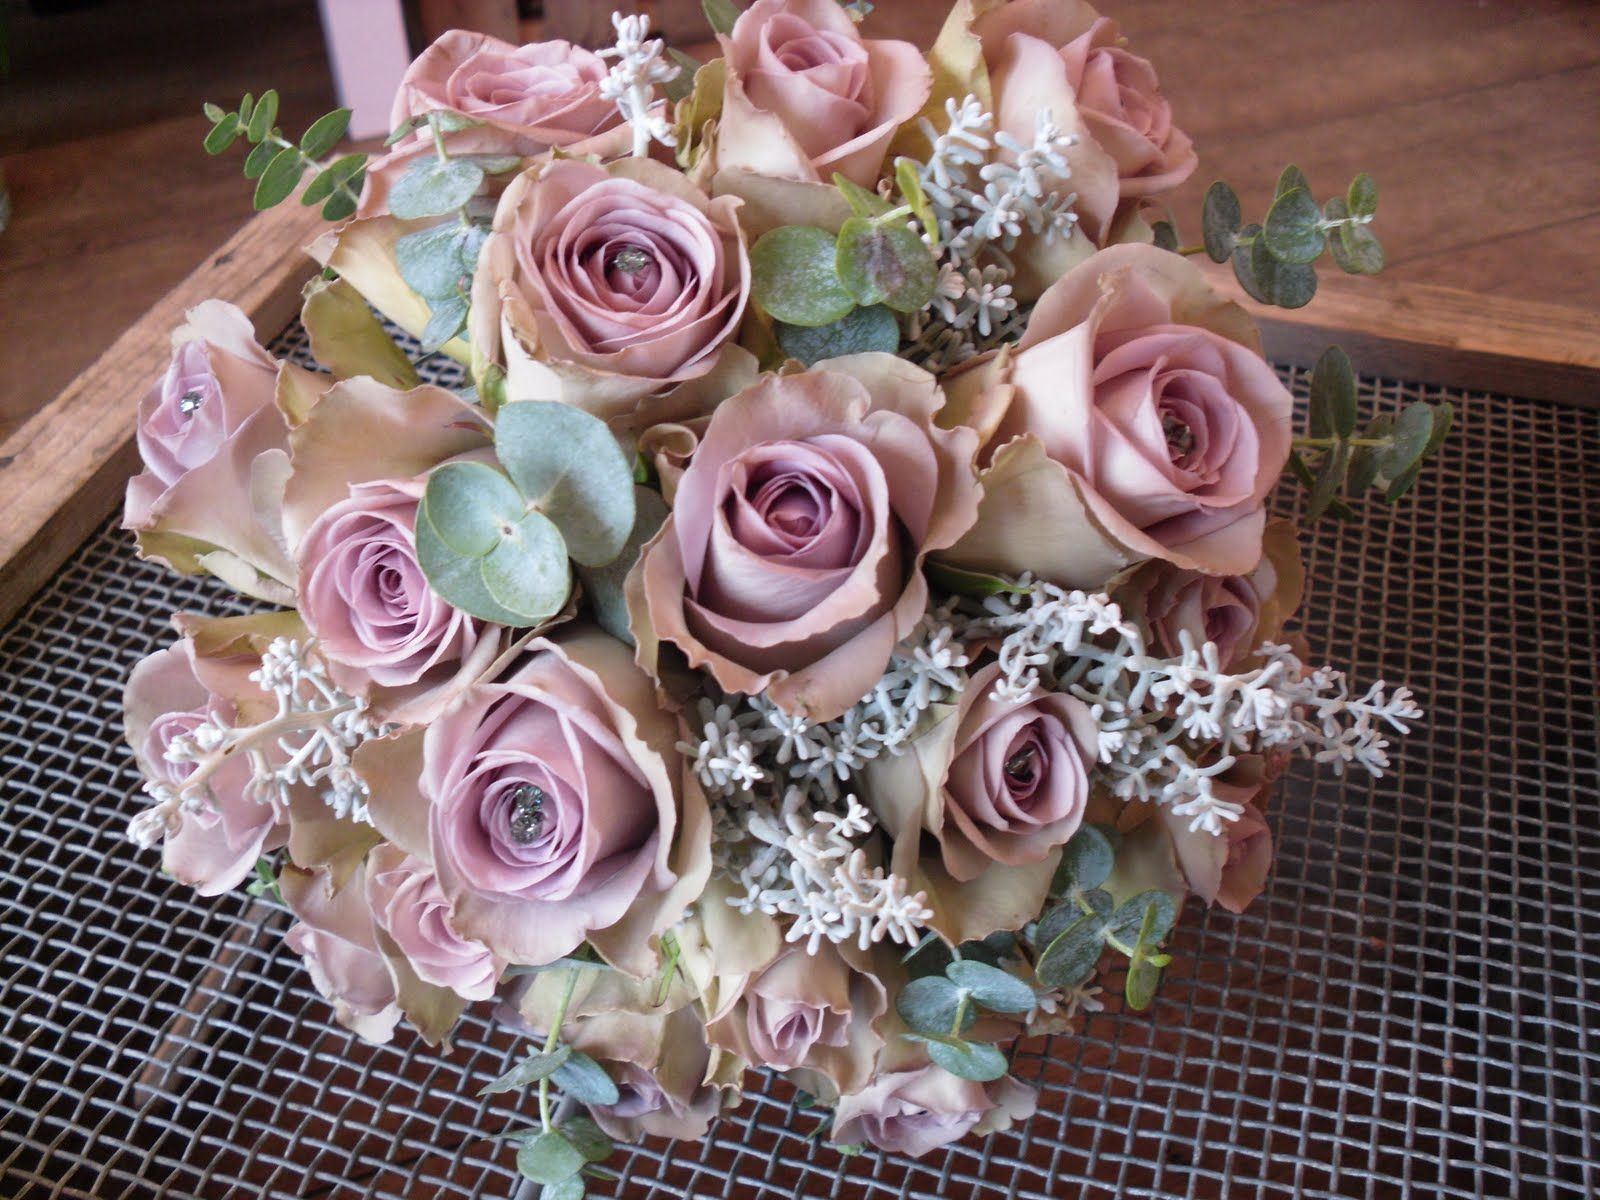 handtied bouquet of 'Amnesia' Roses with Eucalyptys & a